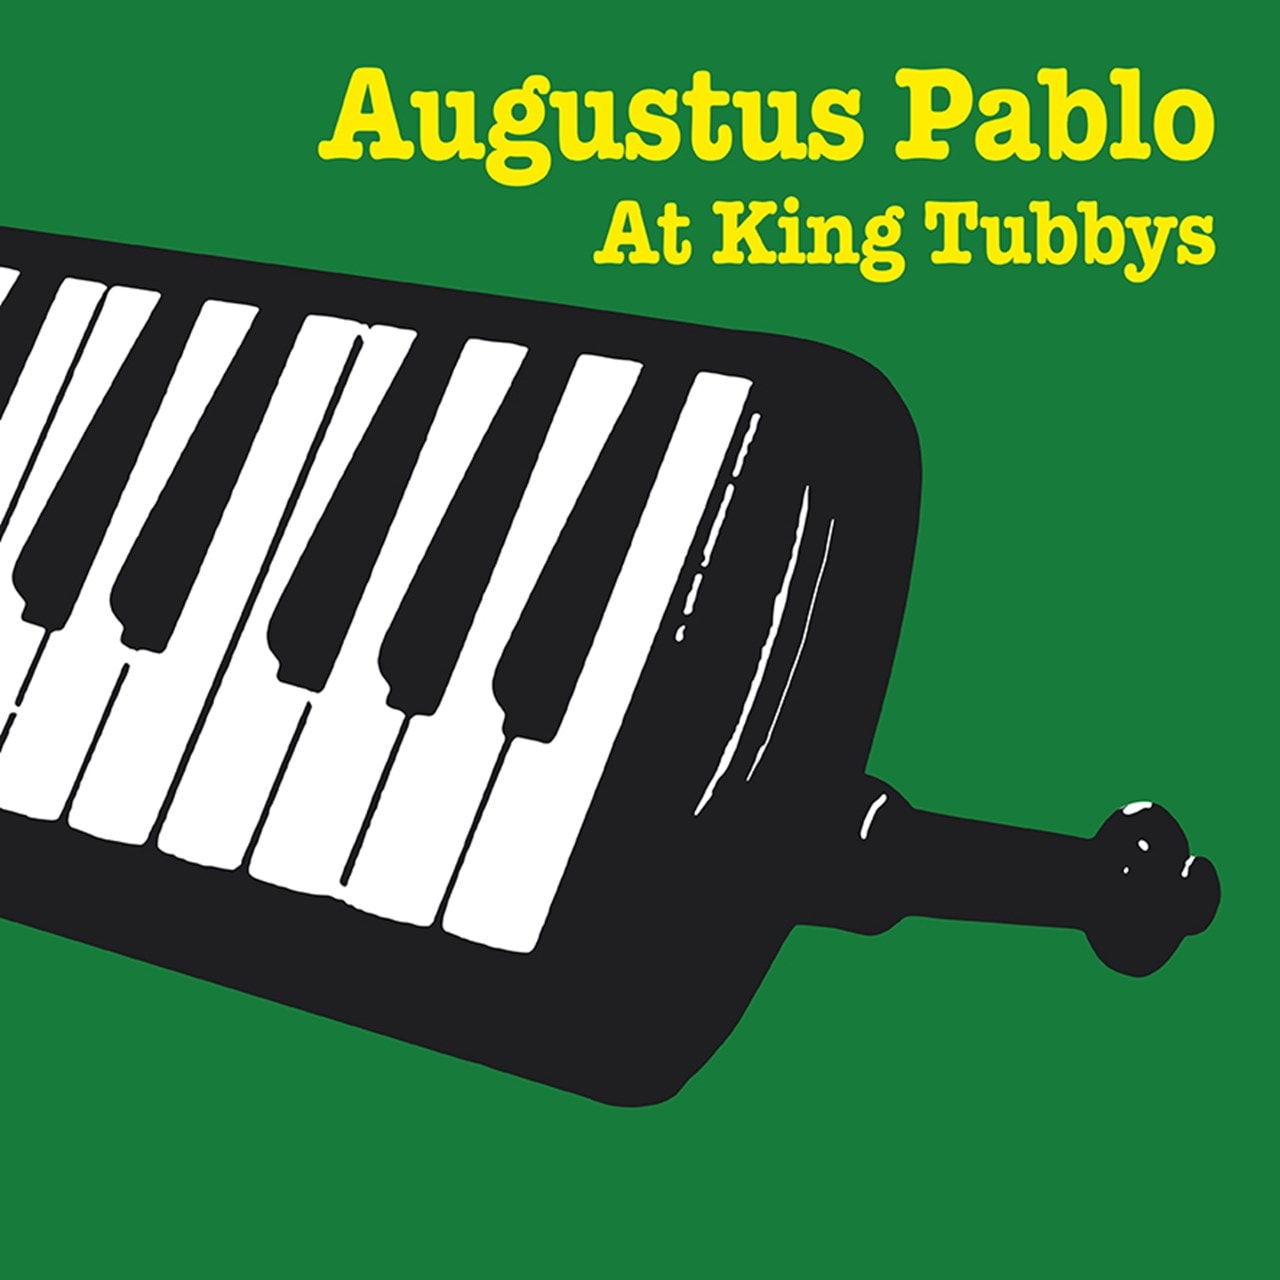 At King Tubby's - 1